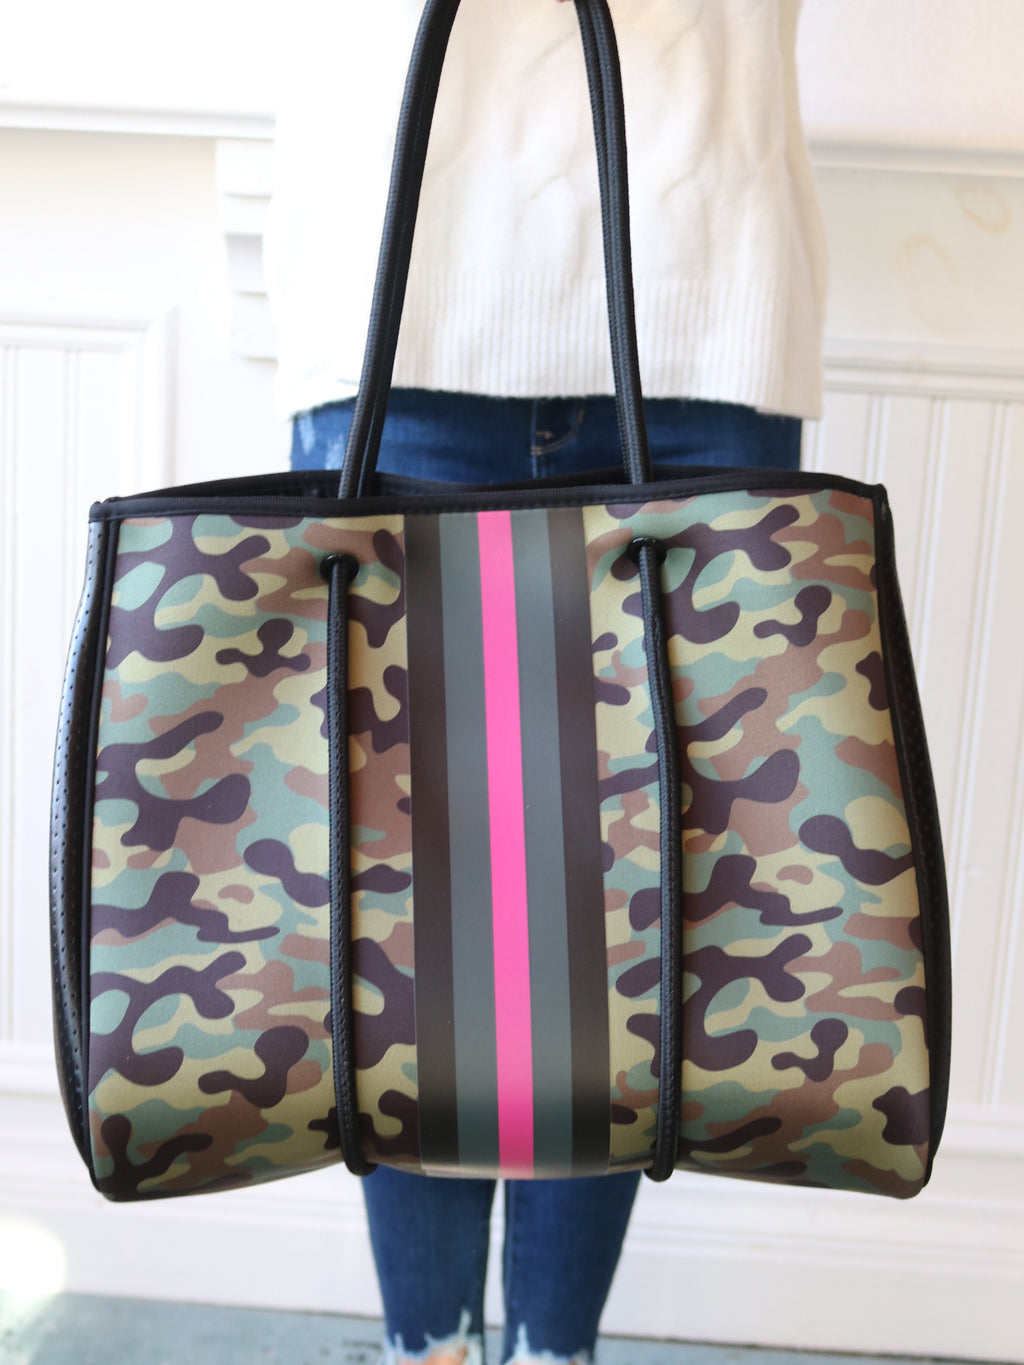 Ellie Pink Army Tote Bag